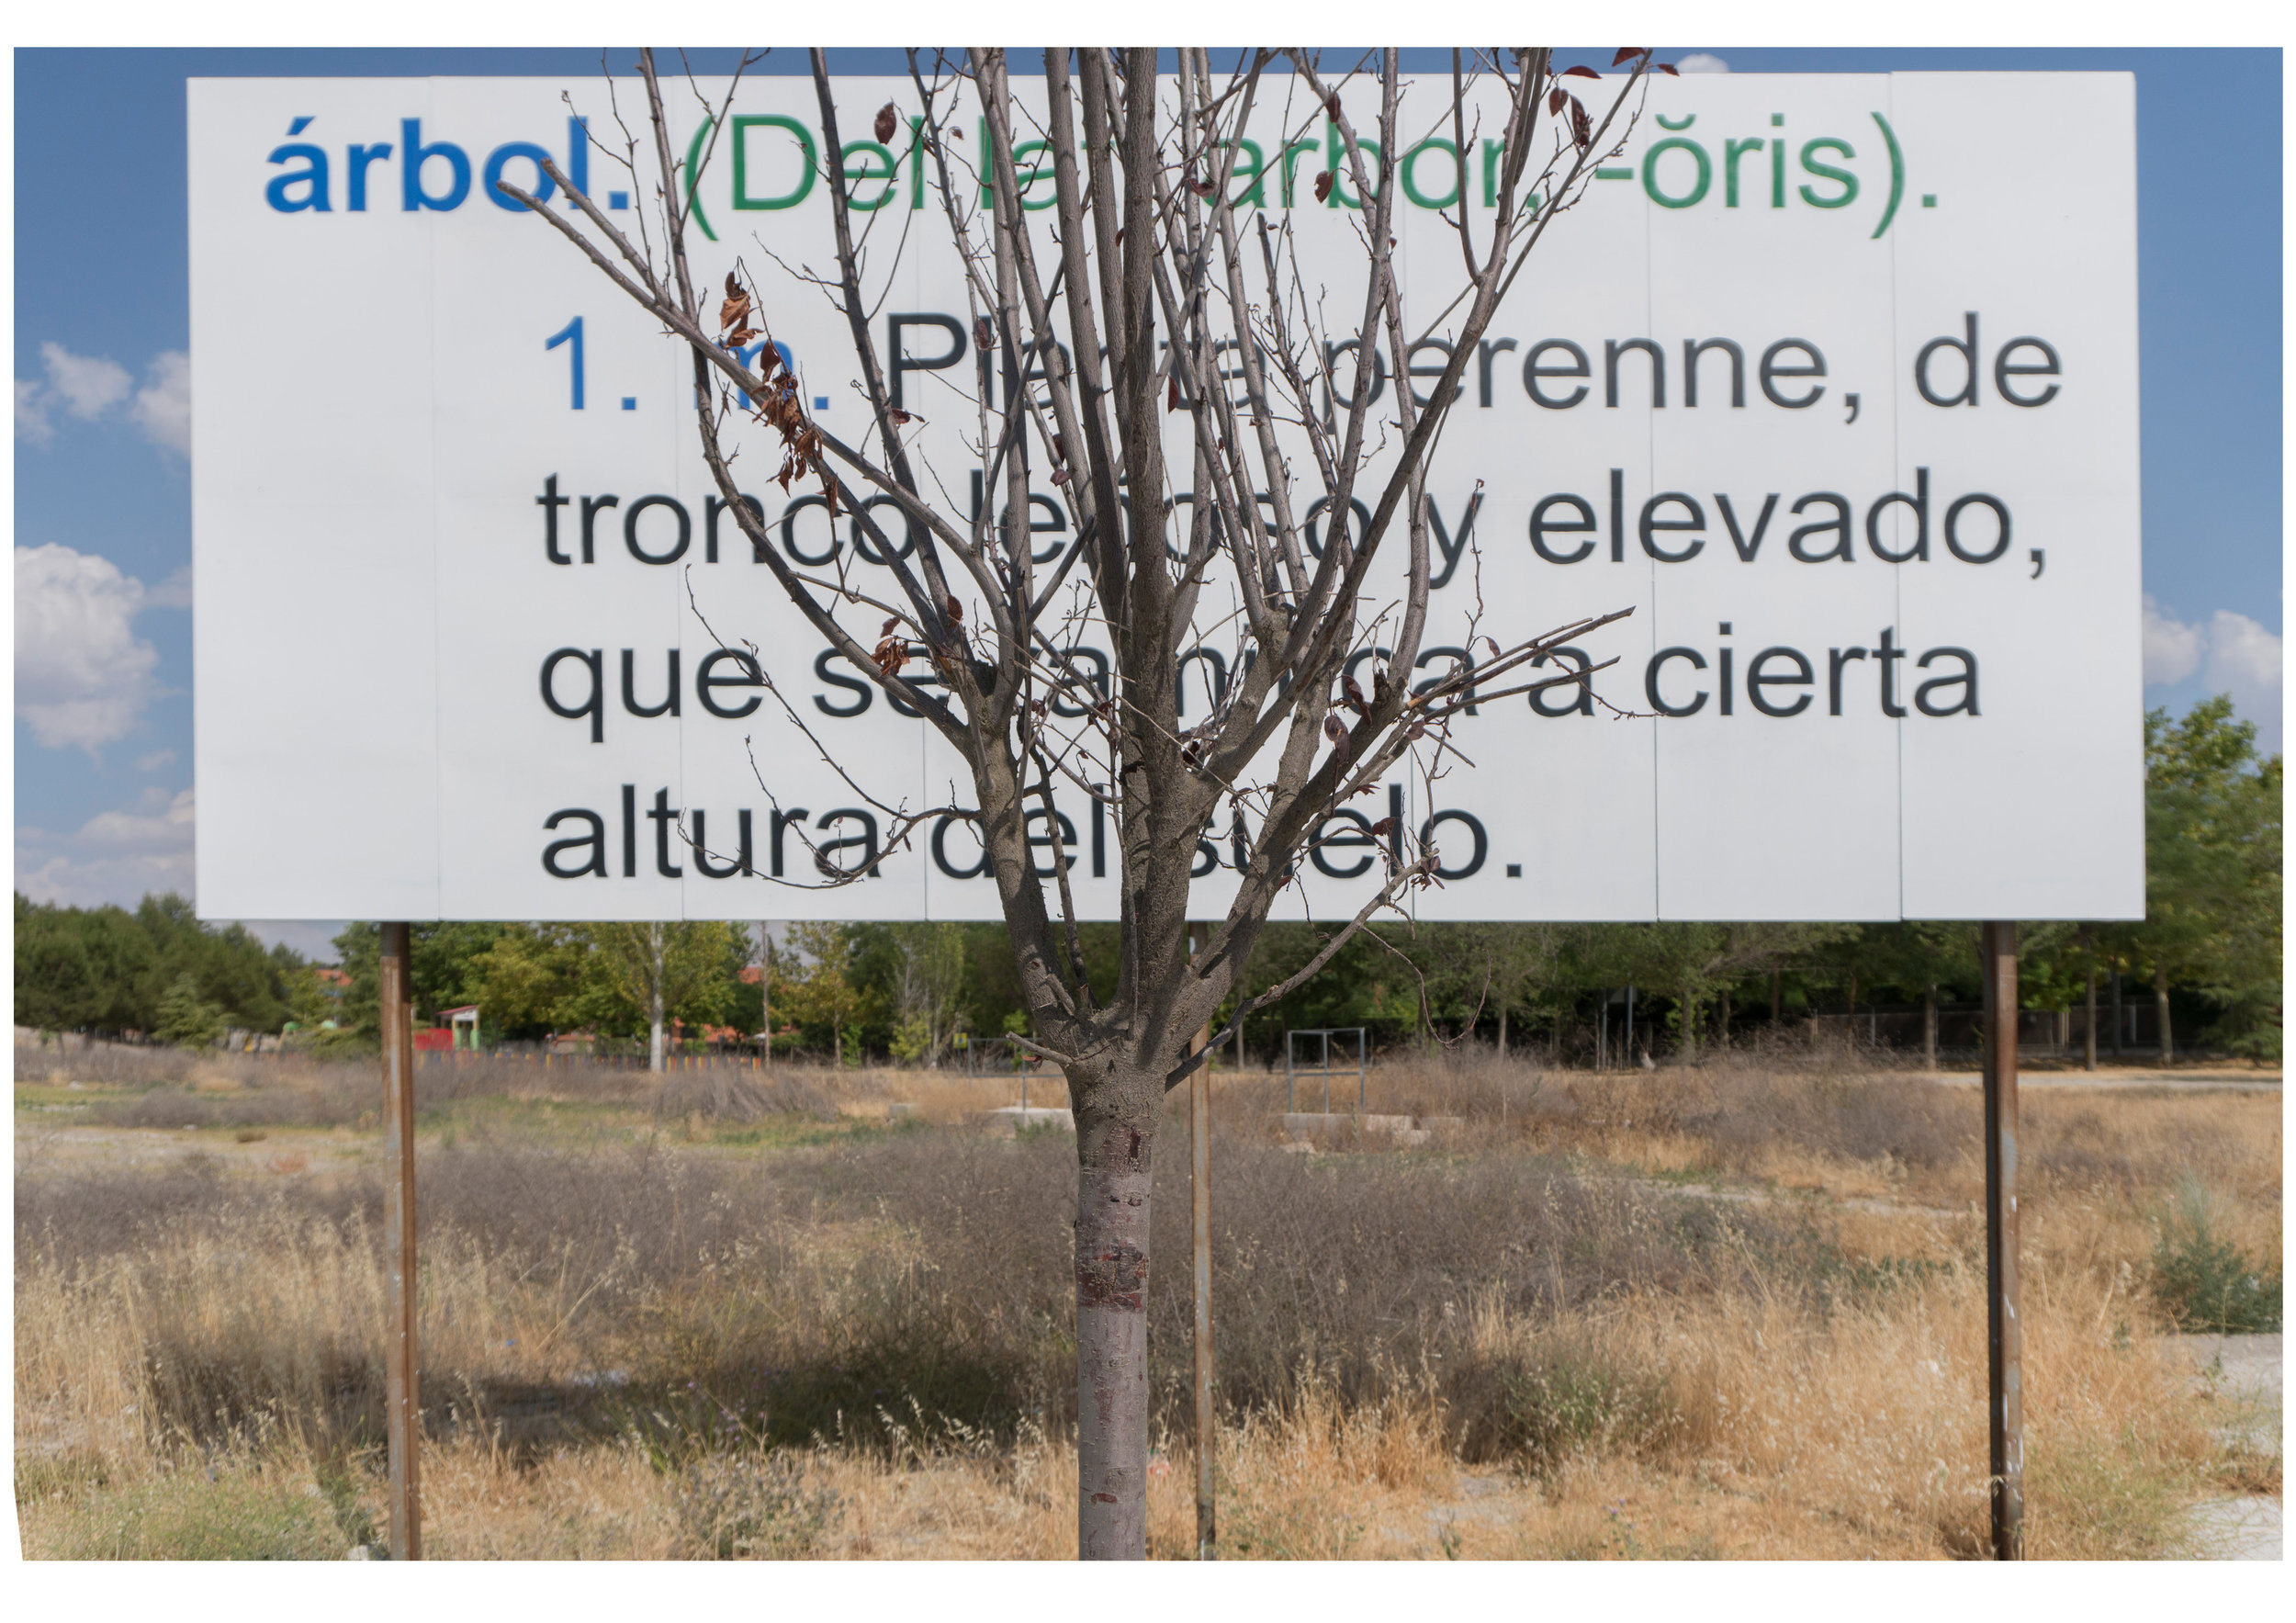 About a tree annoying the reading of the definition of a tree I